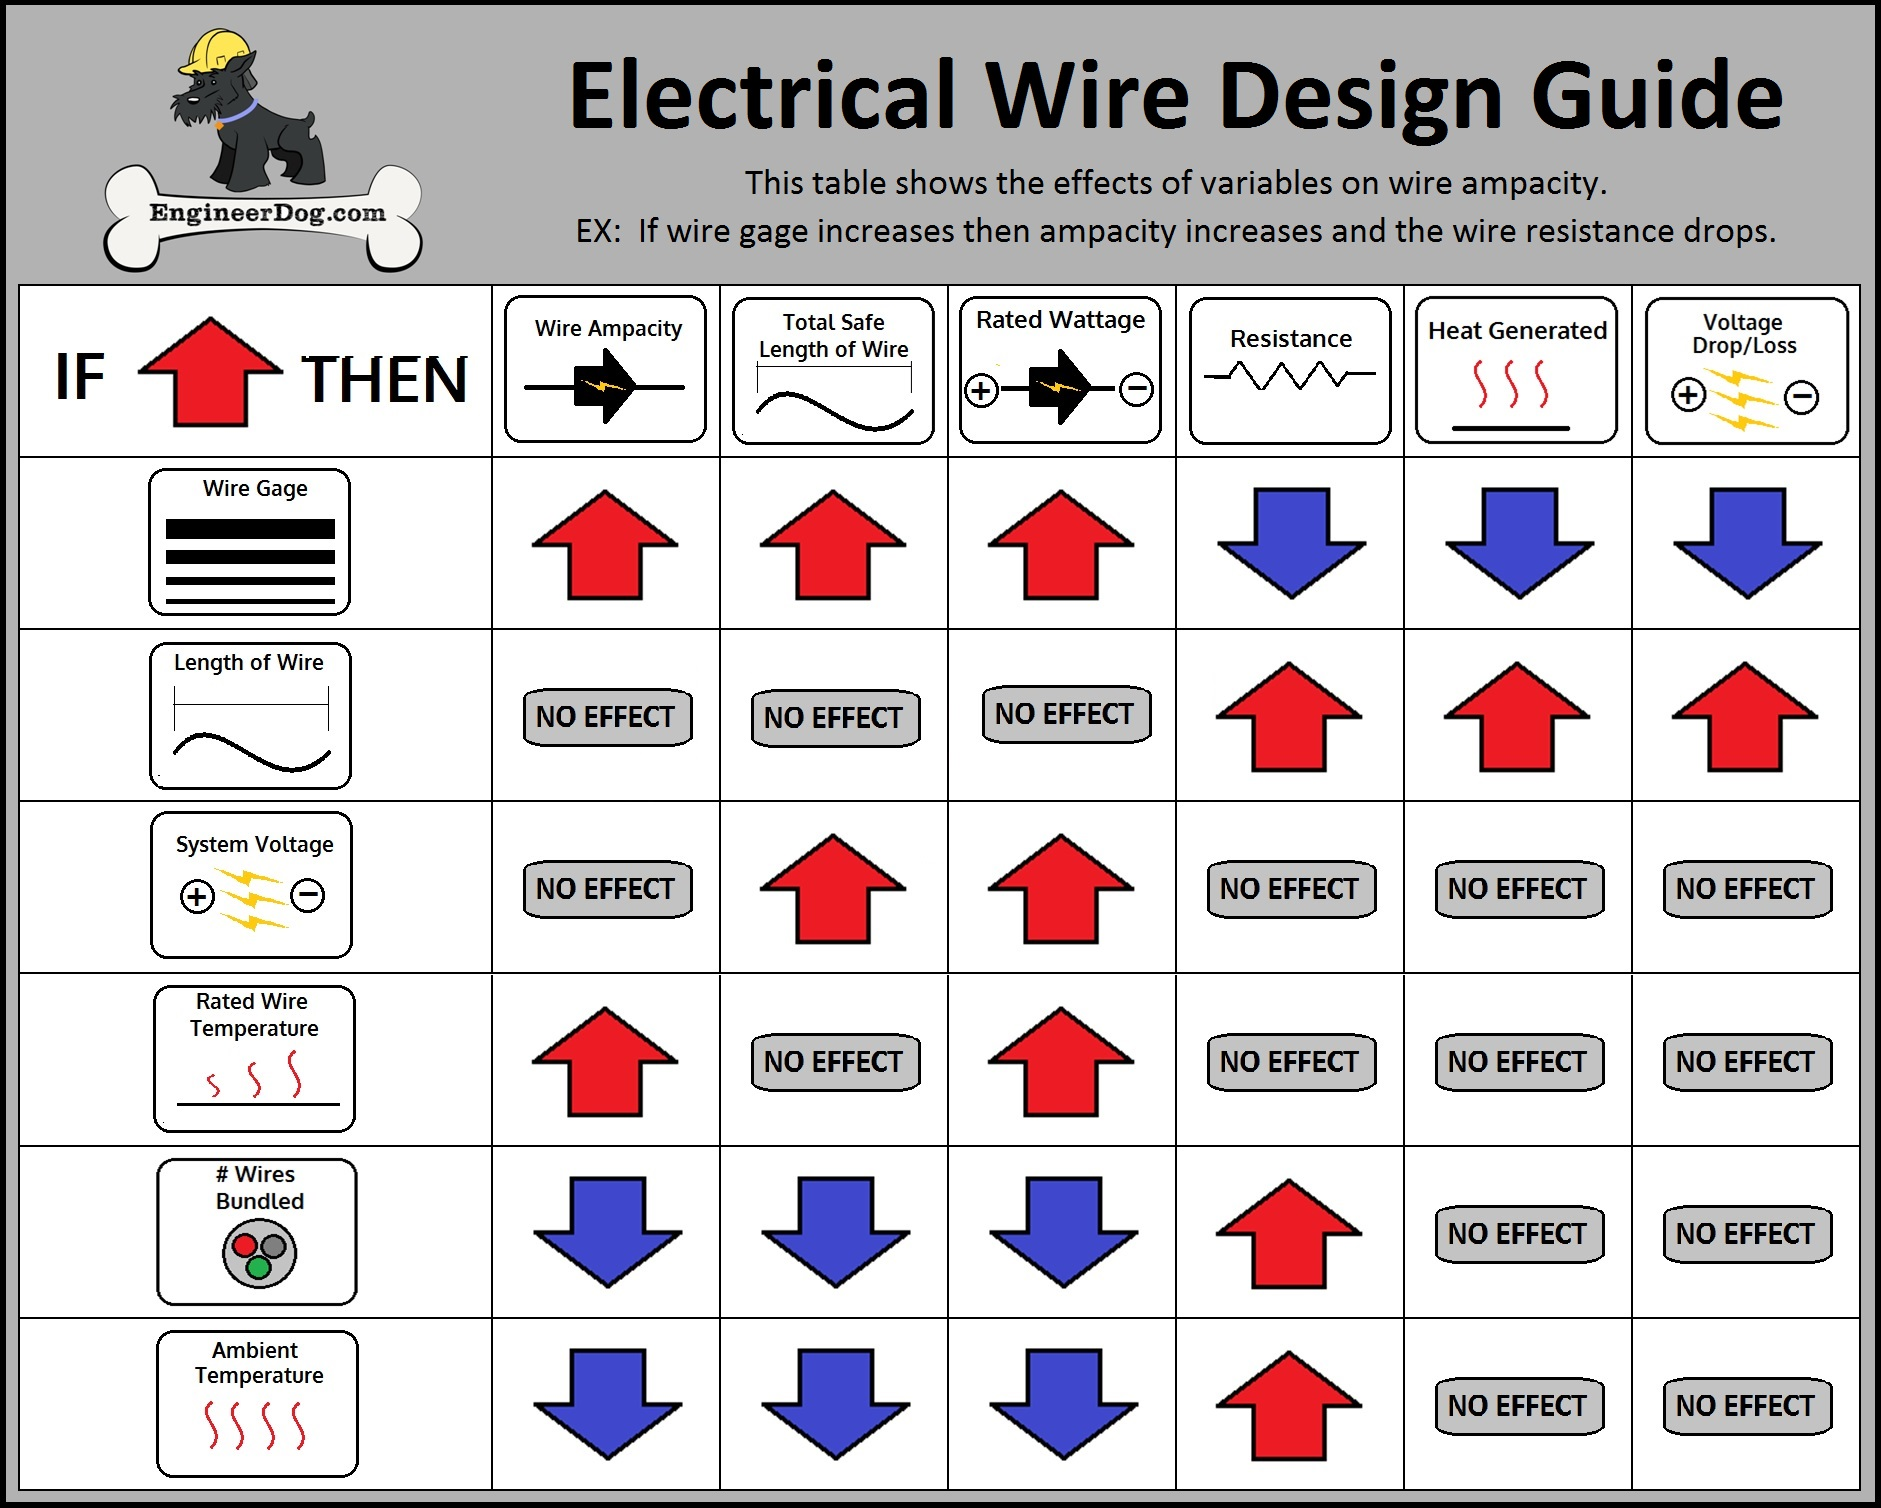 Free electrical wire gauge sizing calculator engineerdog wire sizing guide wire ampacity current carrying capacity keyboard keysfo Choice Image